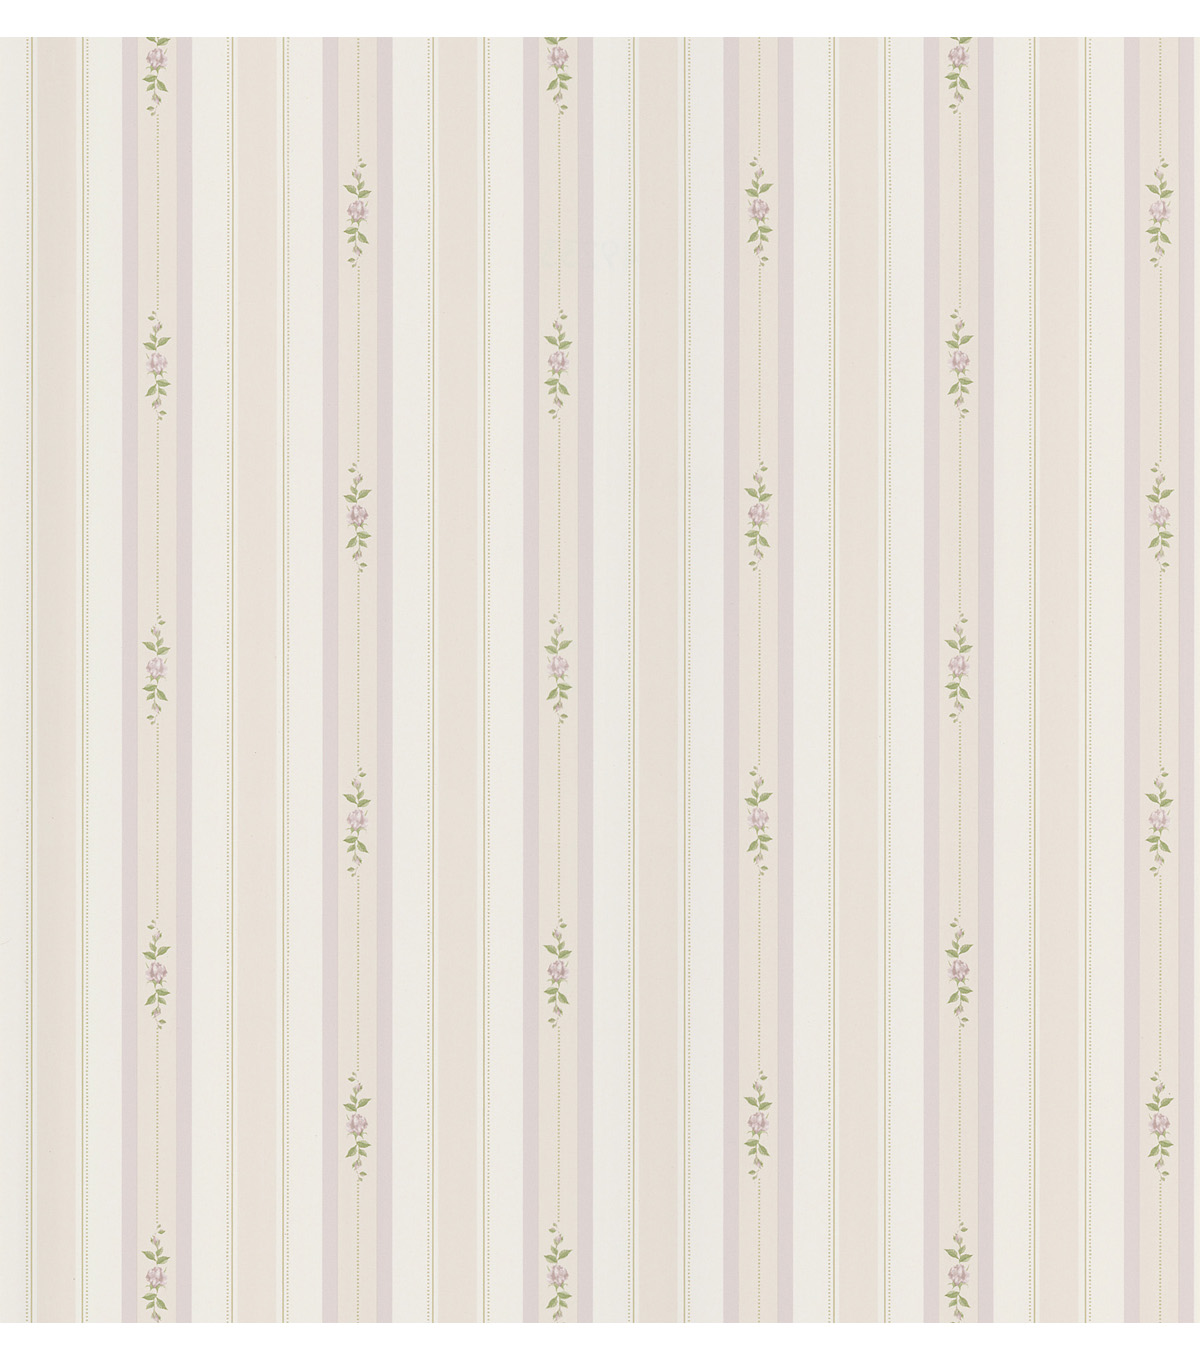 Rosebud Lavender Floral Stripe Wallpaper Sample